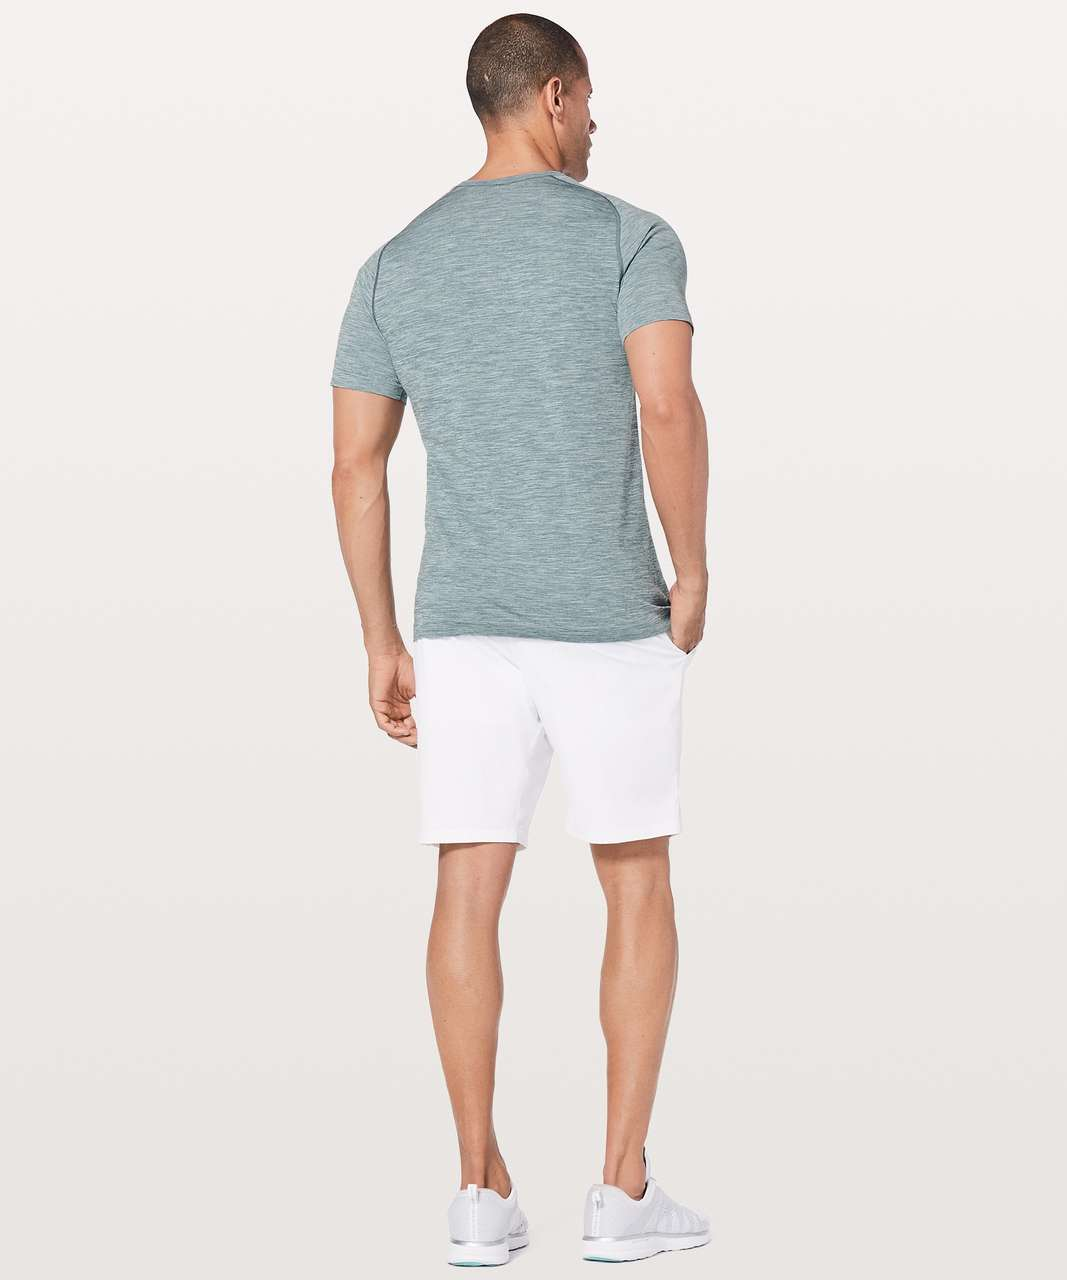 Lululemon Metal Vent Tech Surge Short Sleeve - Mystic Green / White